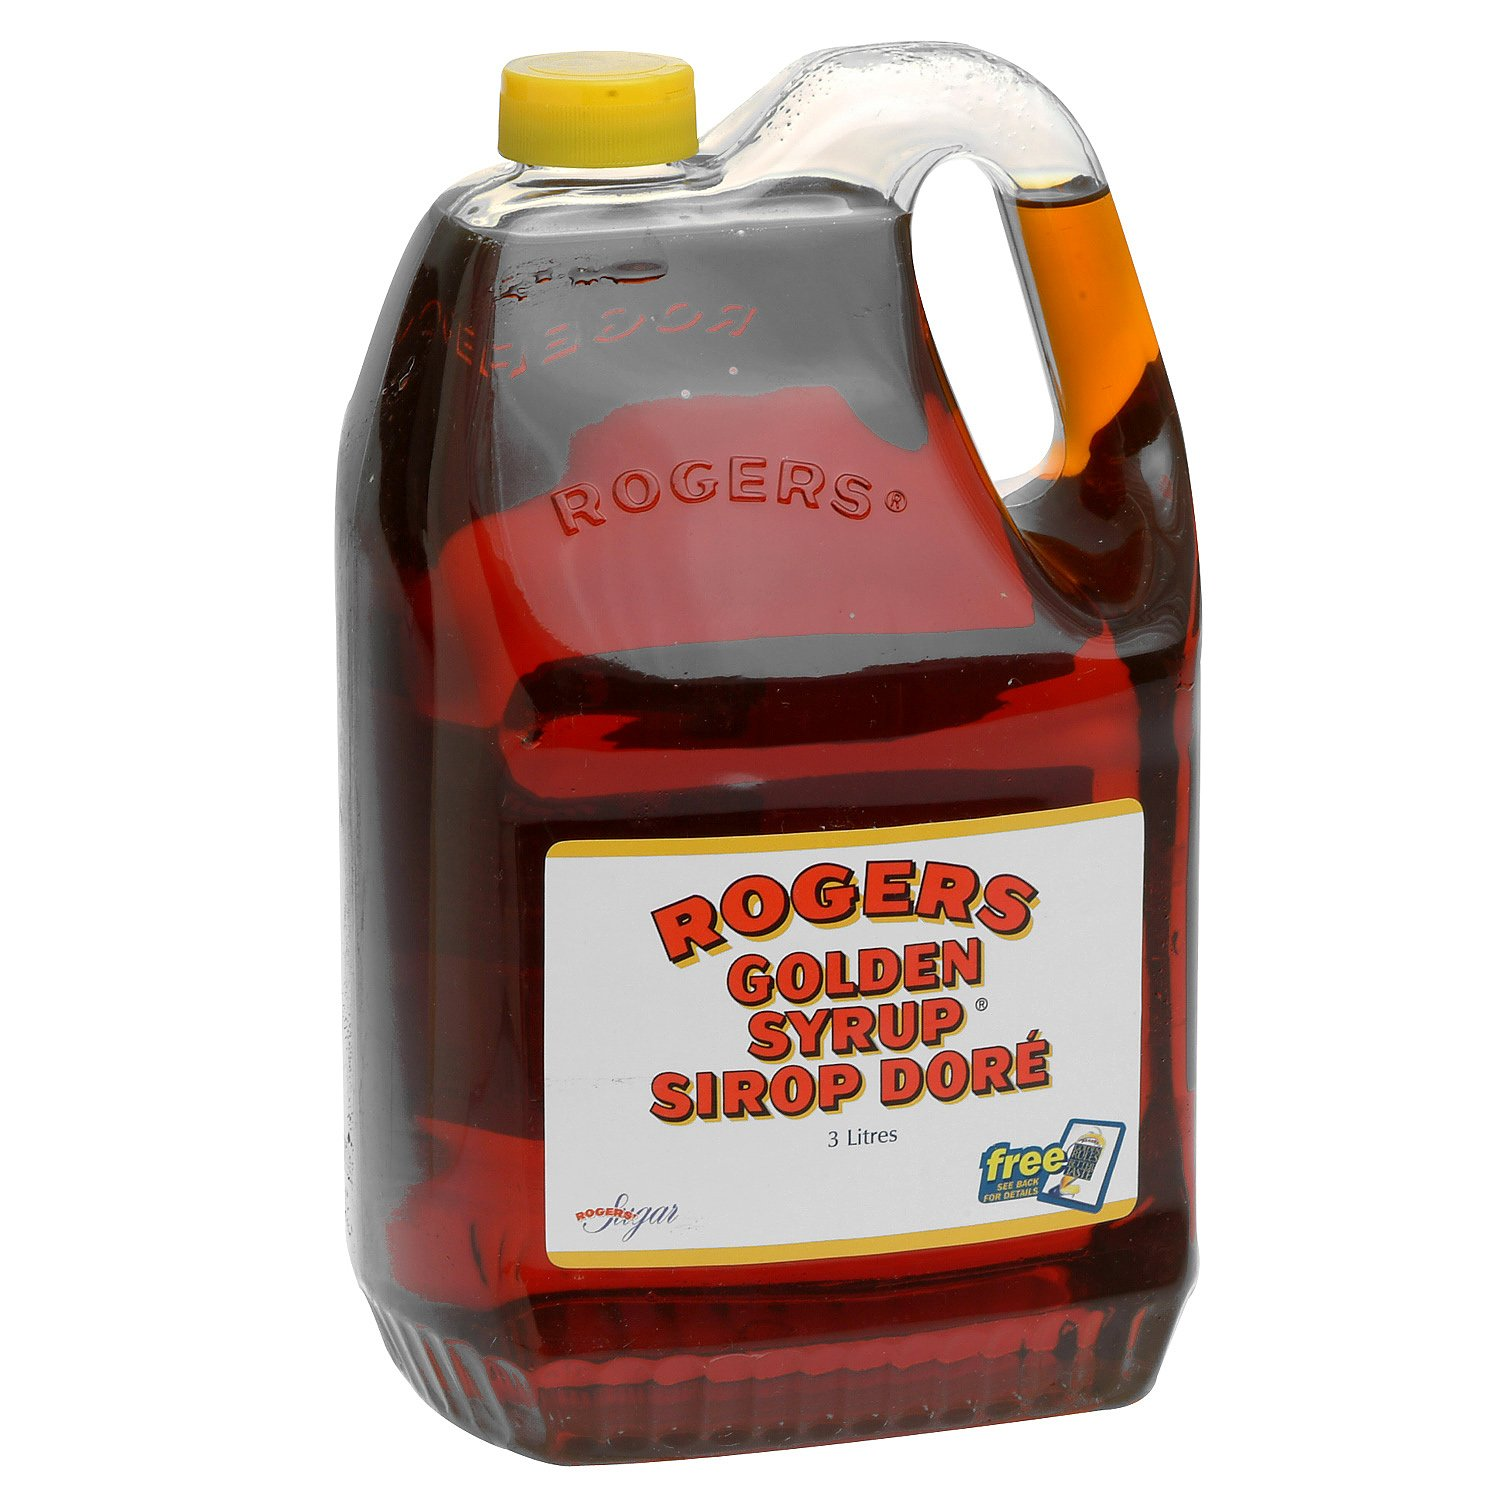 Rogers Golden Syrup - 1 case (4 x 3L)